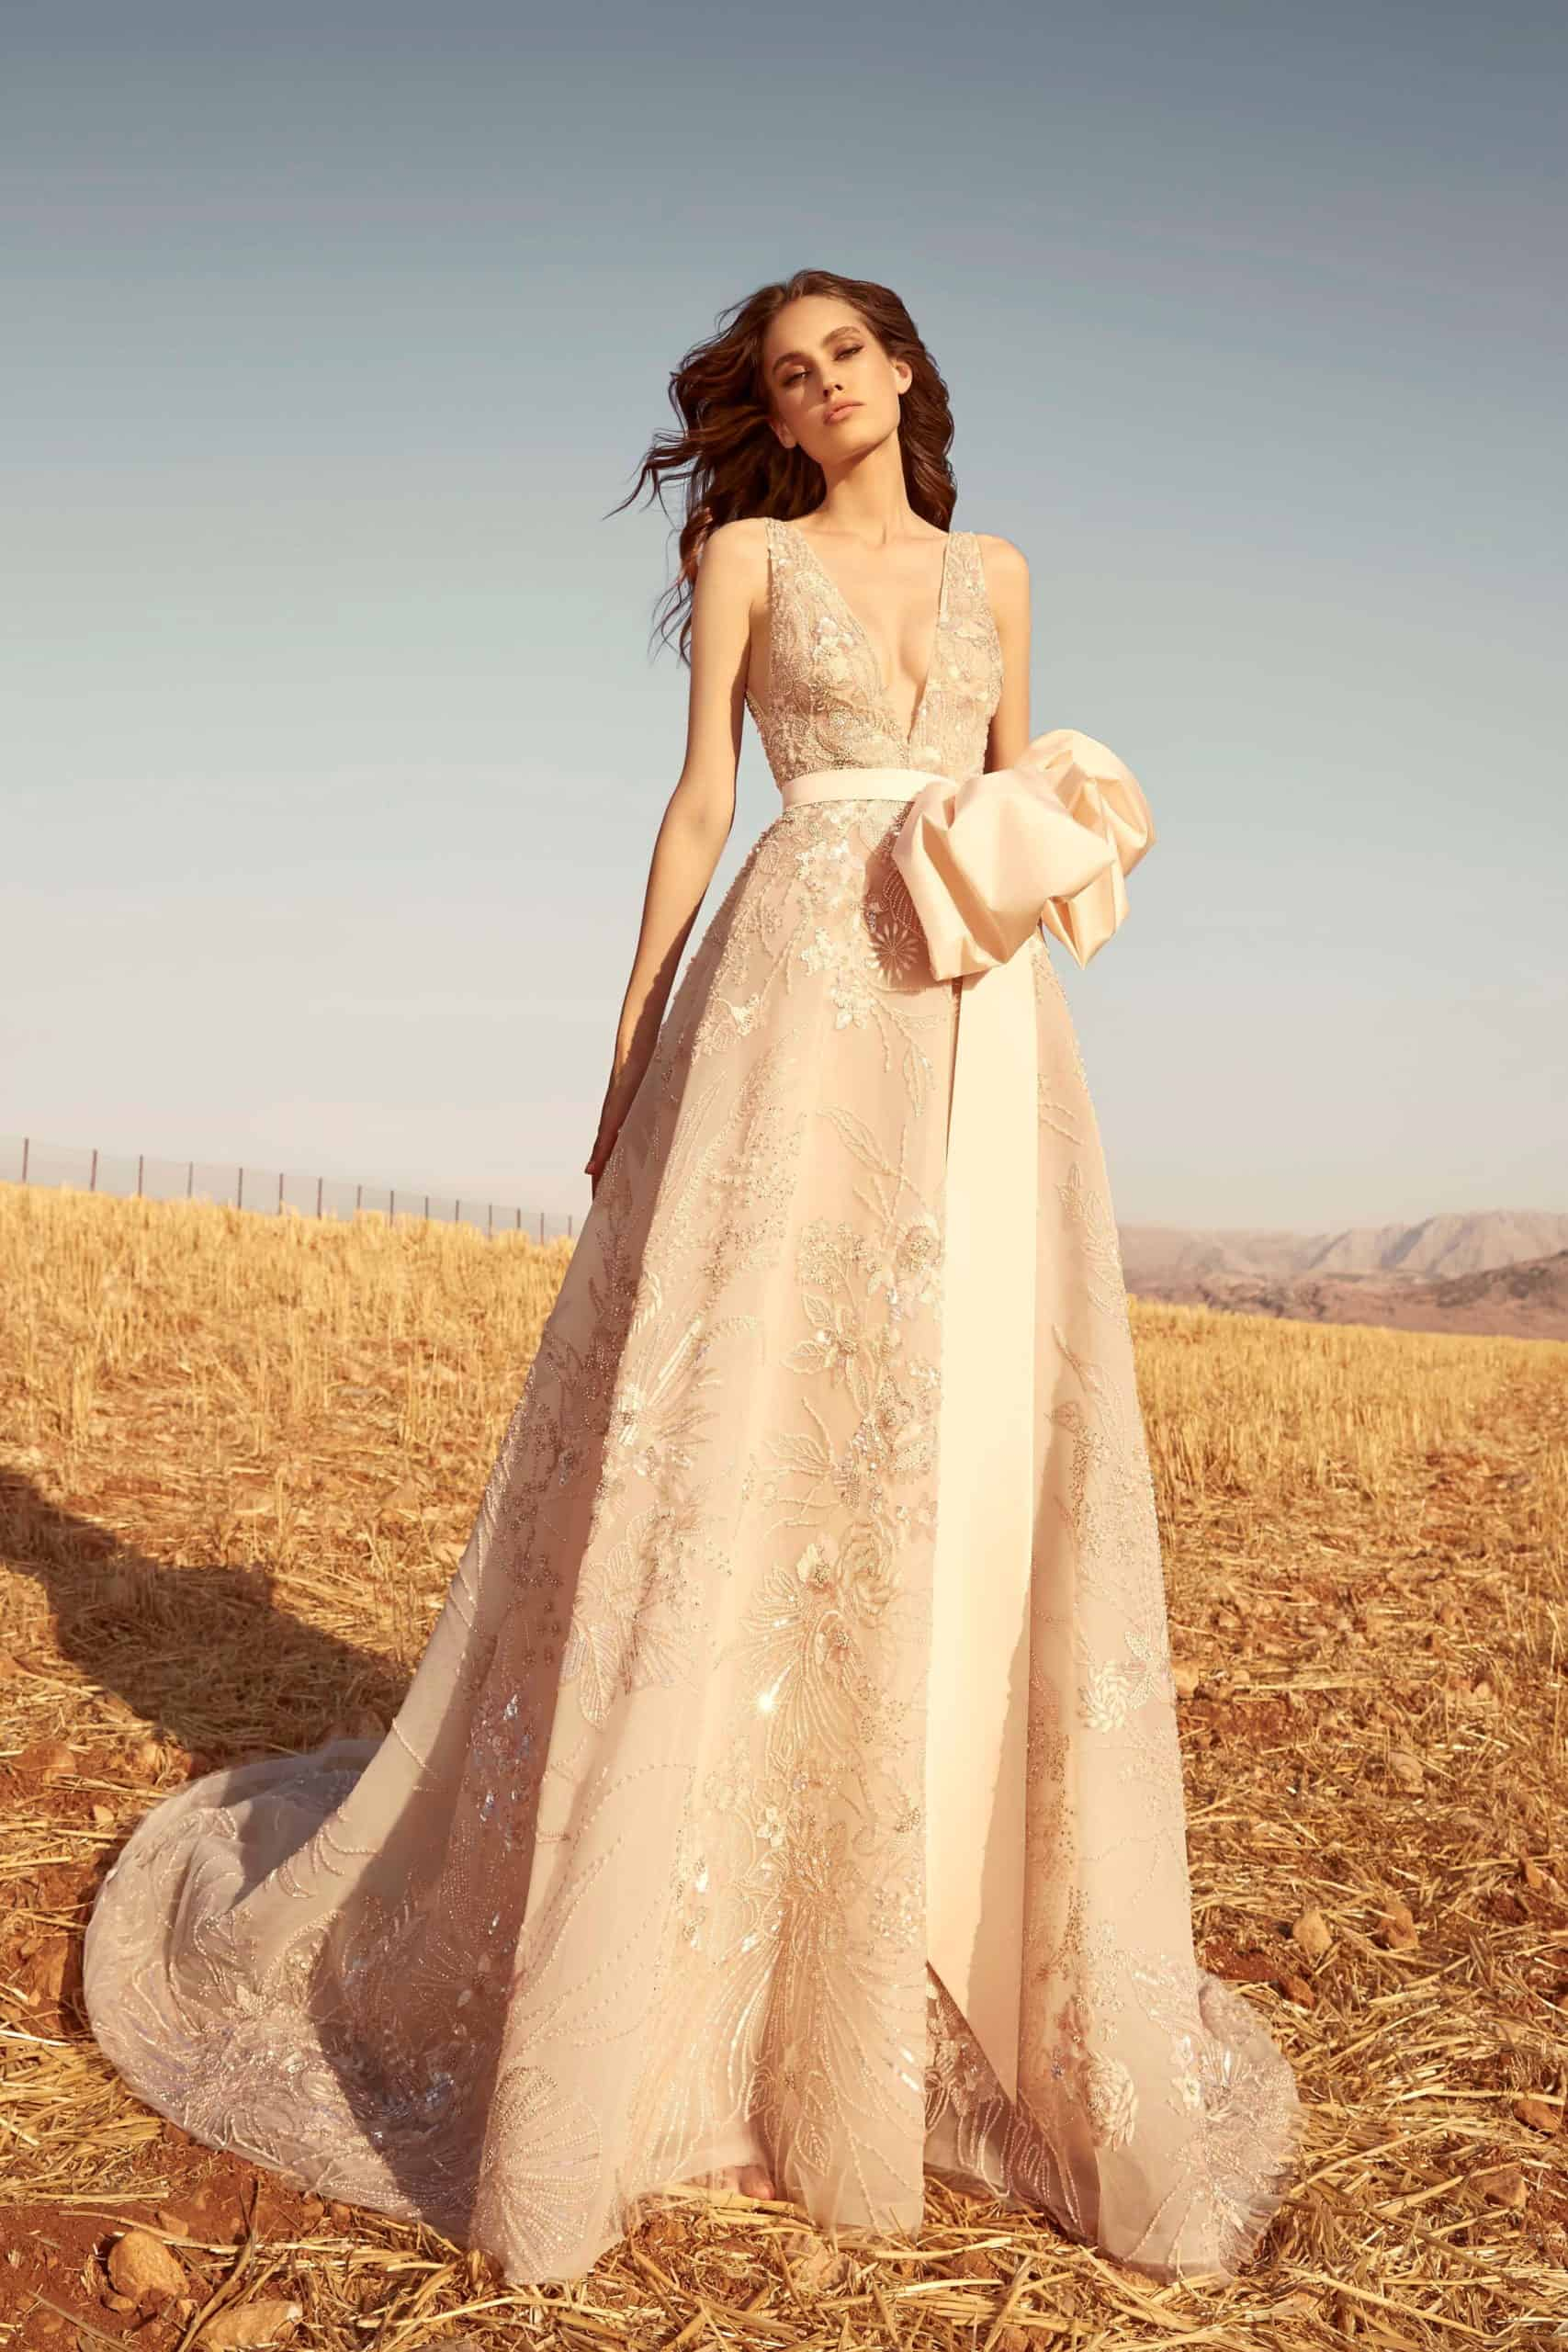 a-line lace wedding dress with a bow by Zuhair Murad